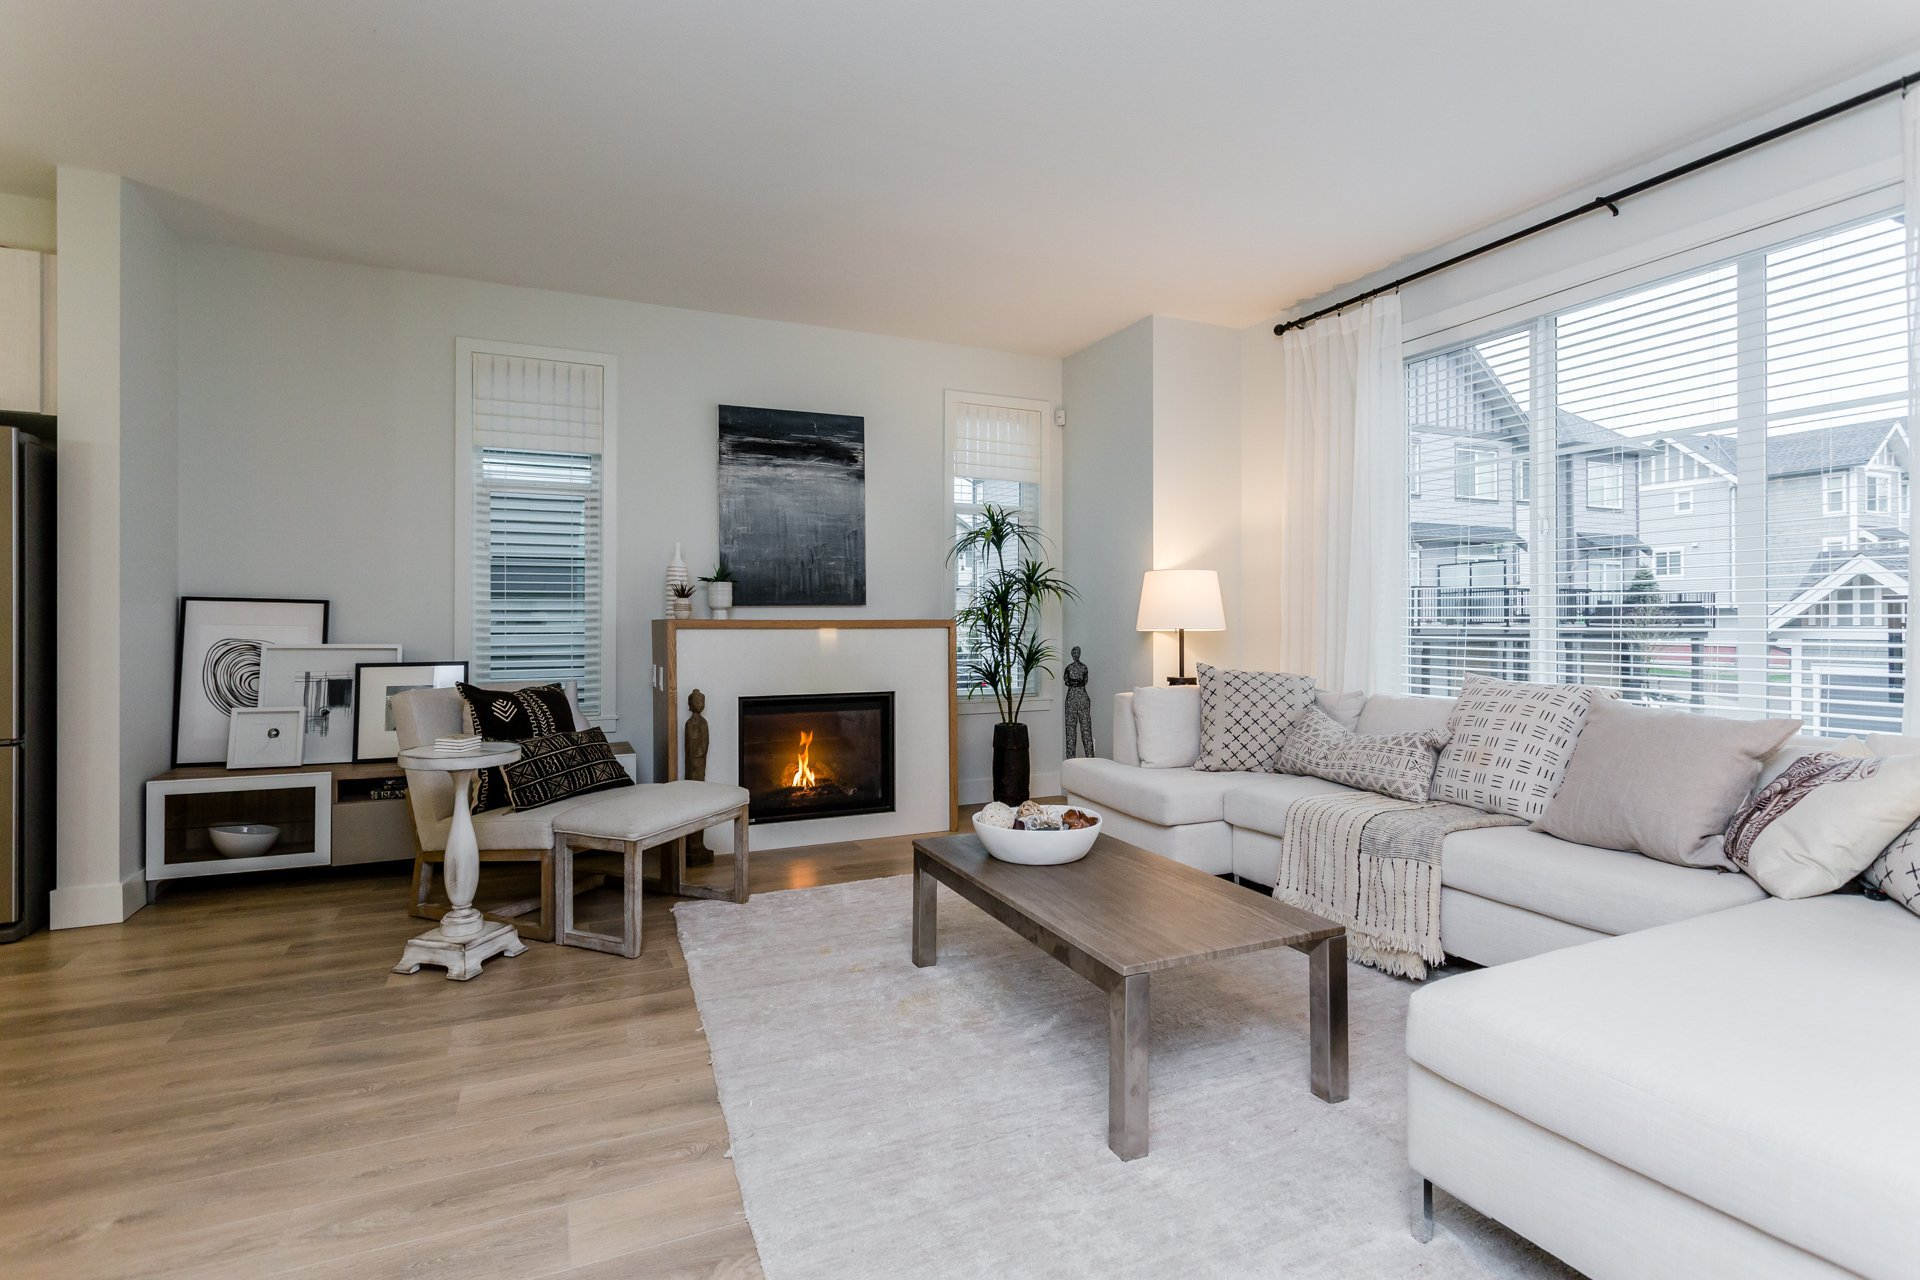 """Photo 21: Photos: 8 8217 204B Street in Langley: Willoughby Heights Townhouse for sale in """"EVERLY GREEN"""" : MLS®# R2236678"""